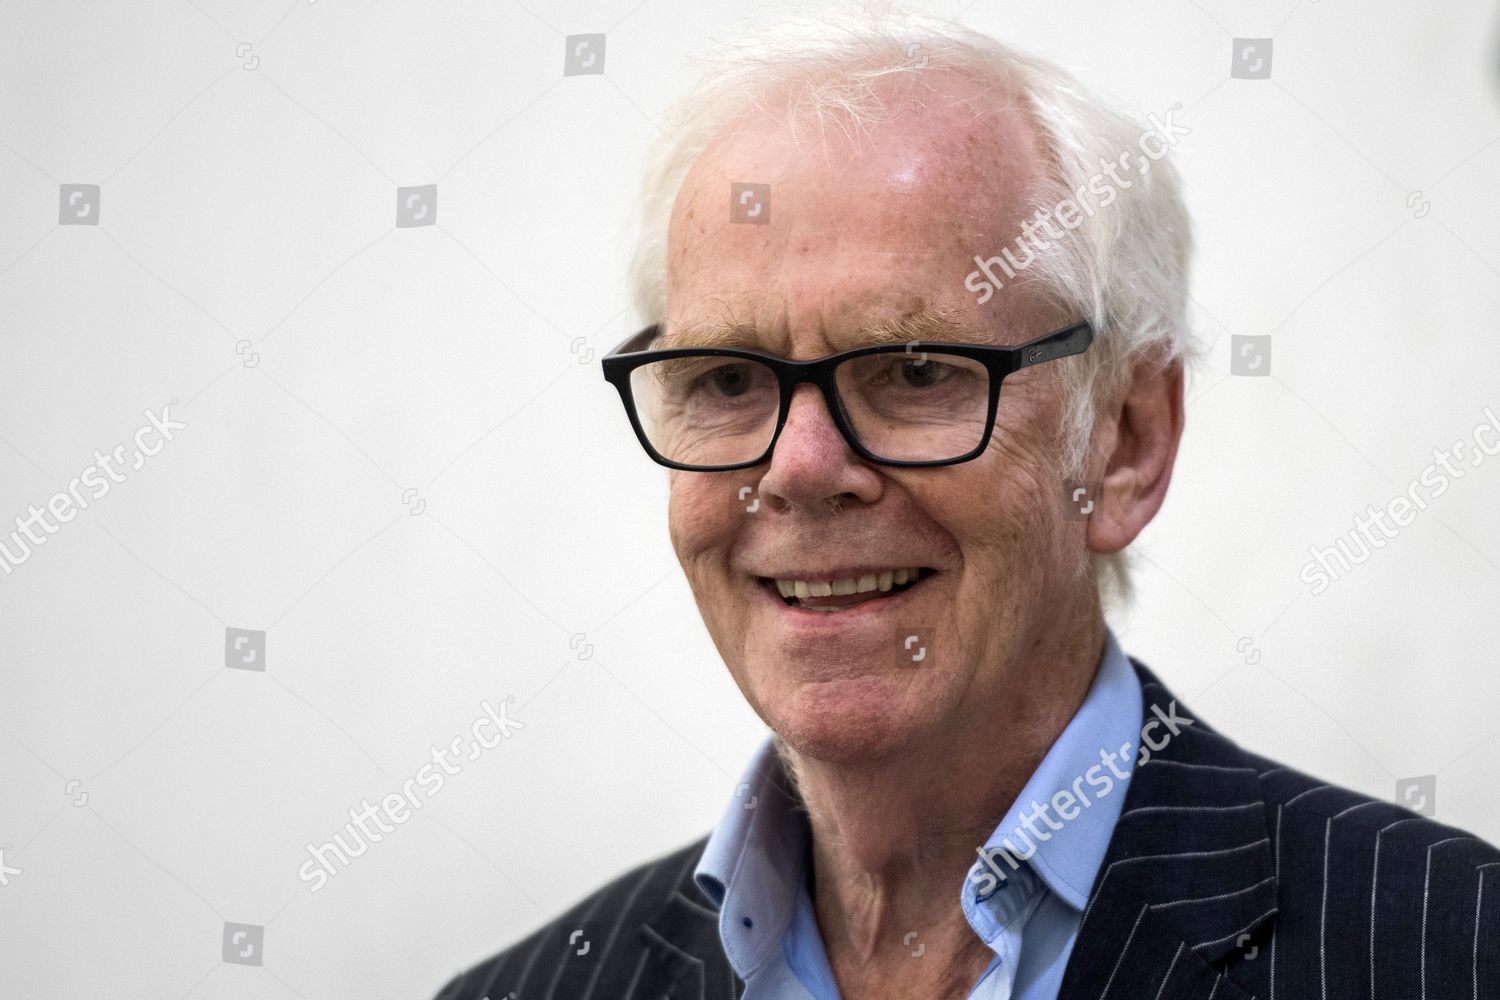 Stock photo of Star Wars actor Jeremy Bulloch attends photocall at Star Wars Identities London, United Kingdom - 26 Jul 2017